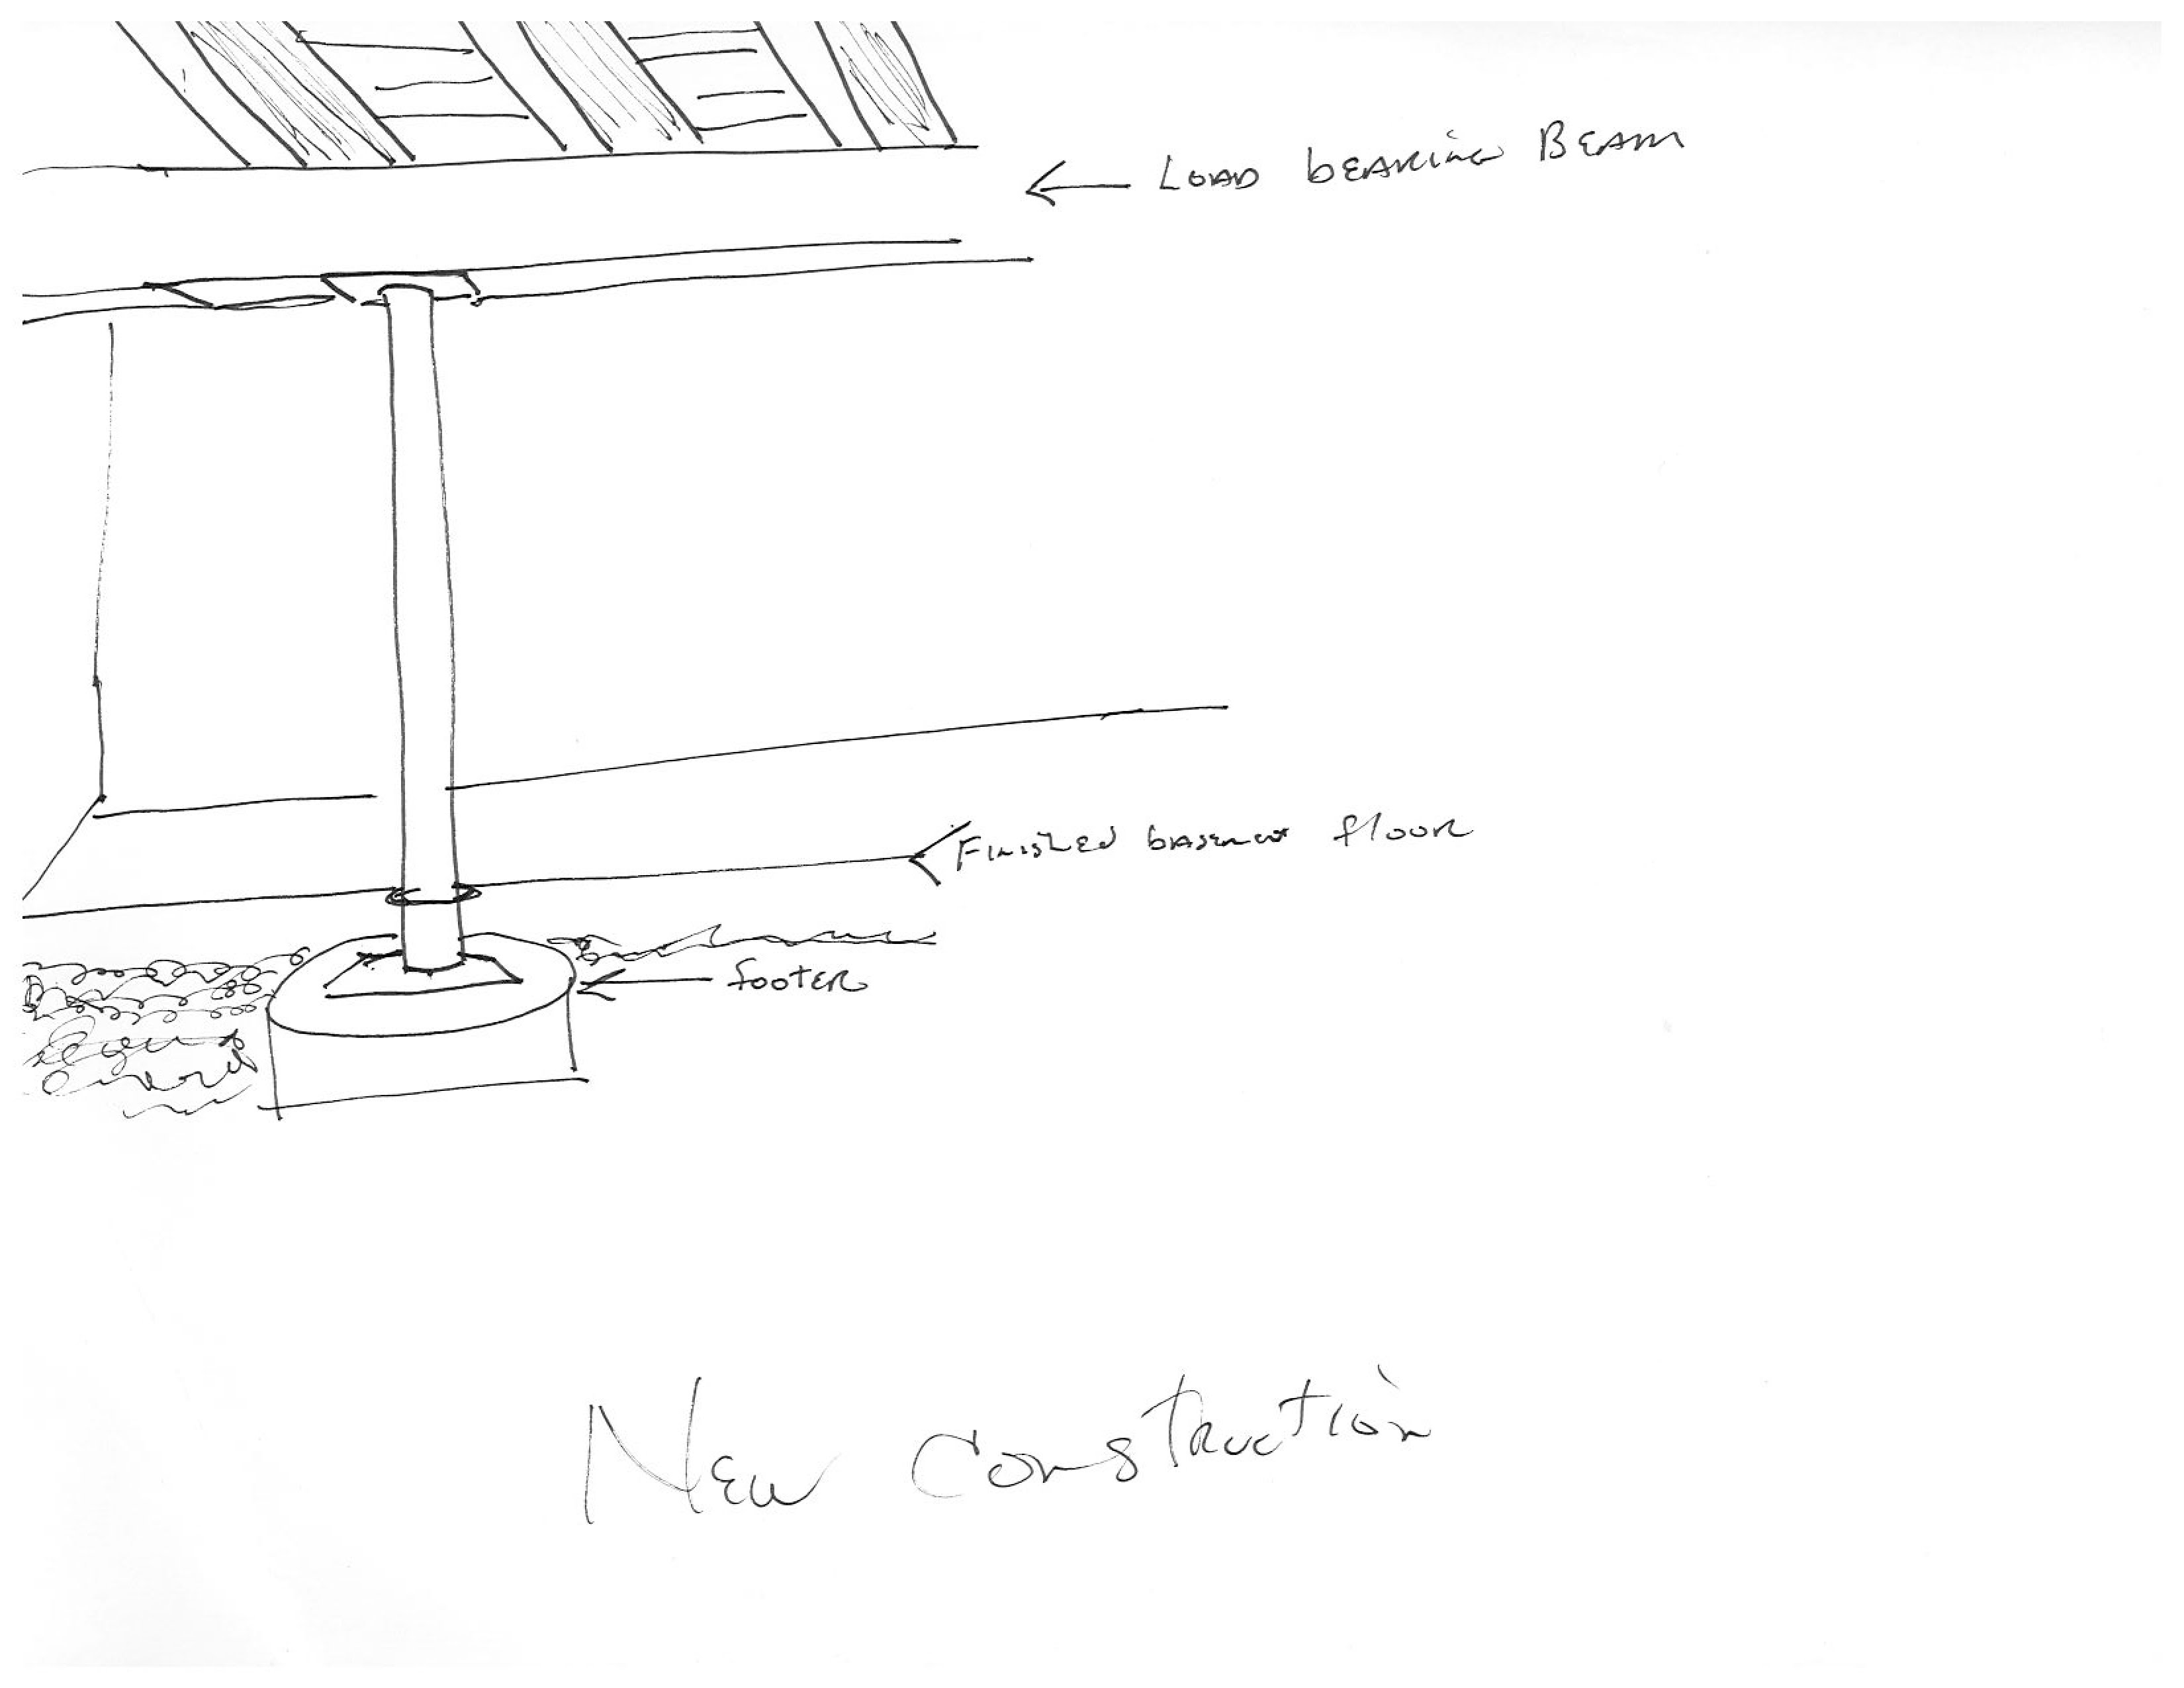 Lally Column as a load bearing beam.